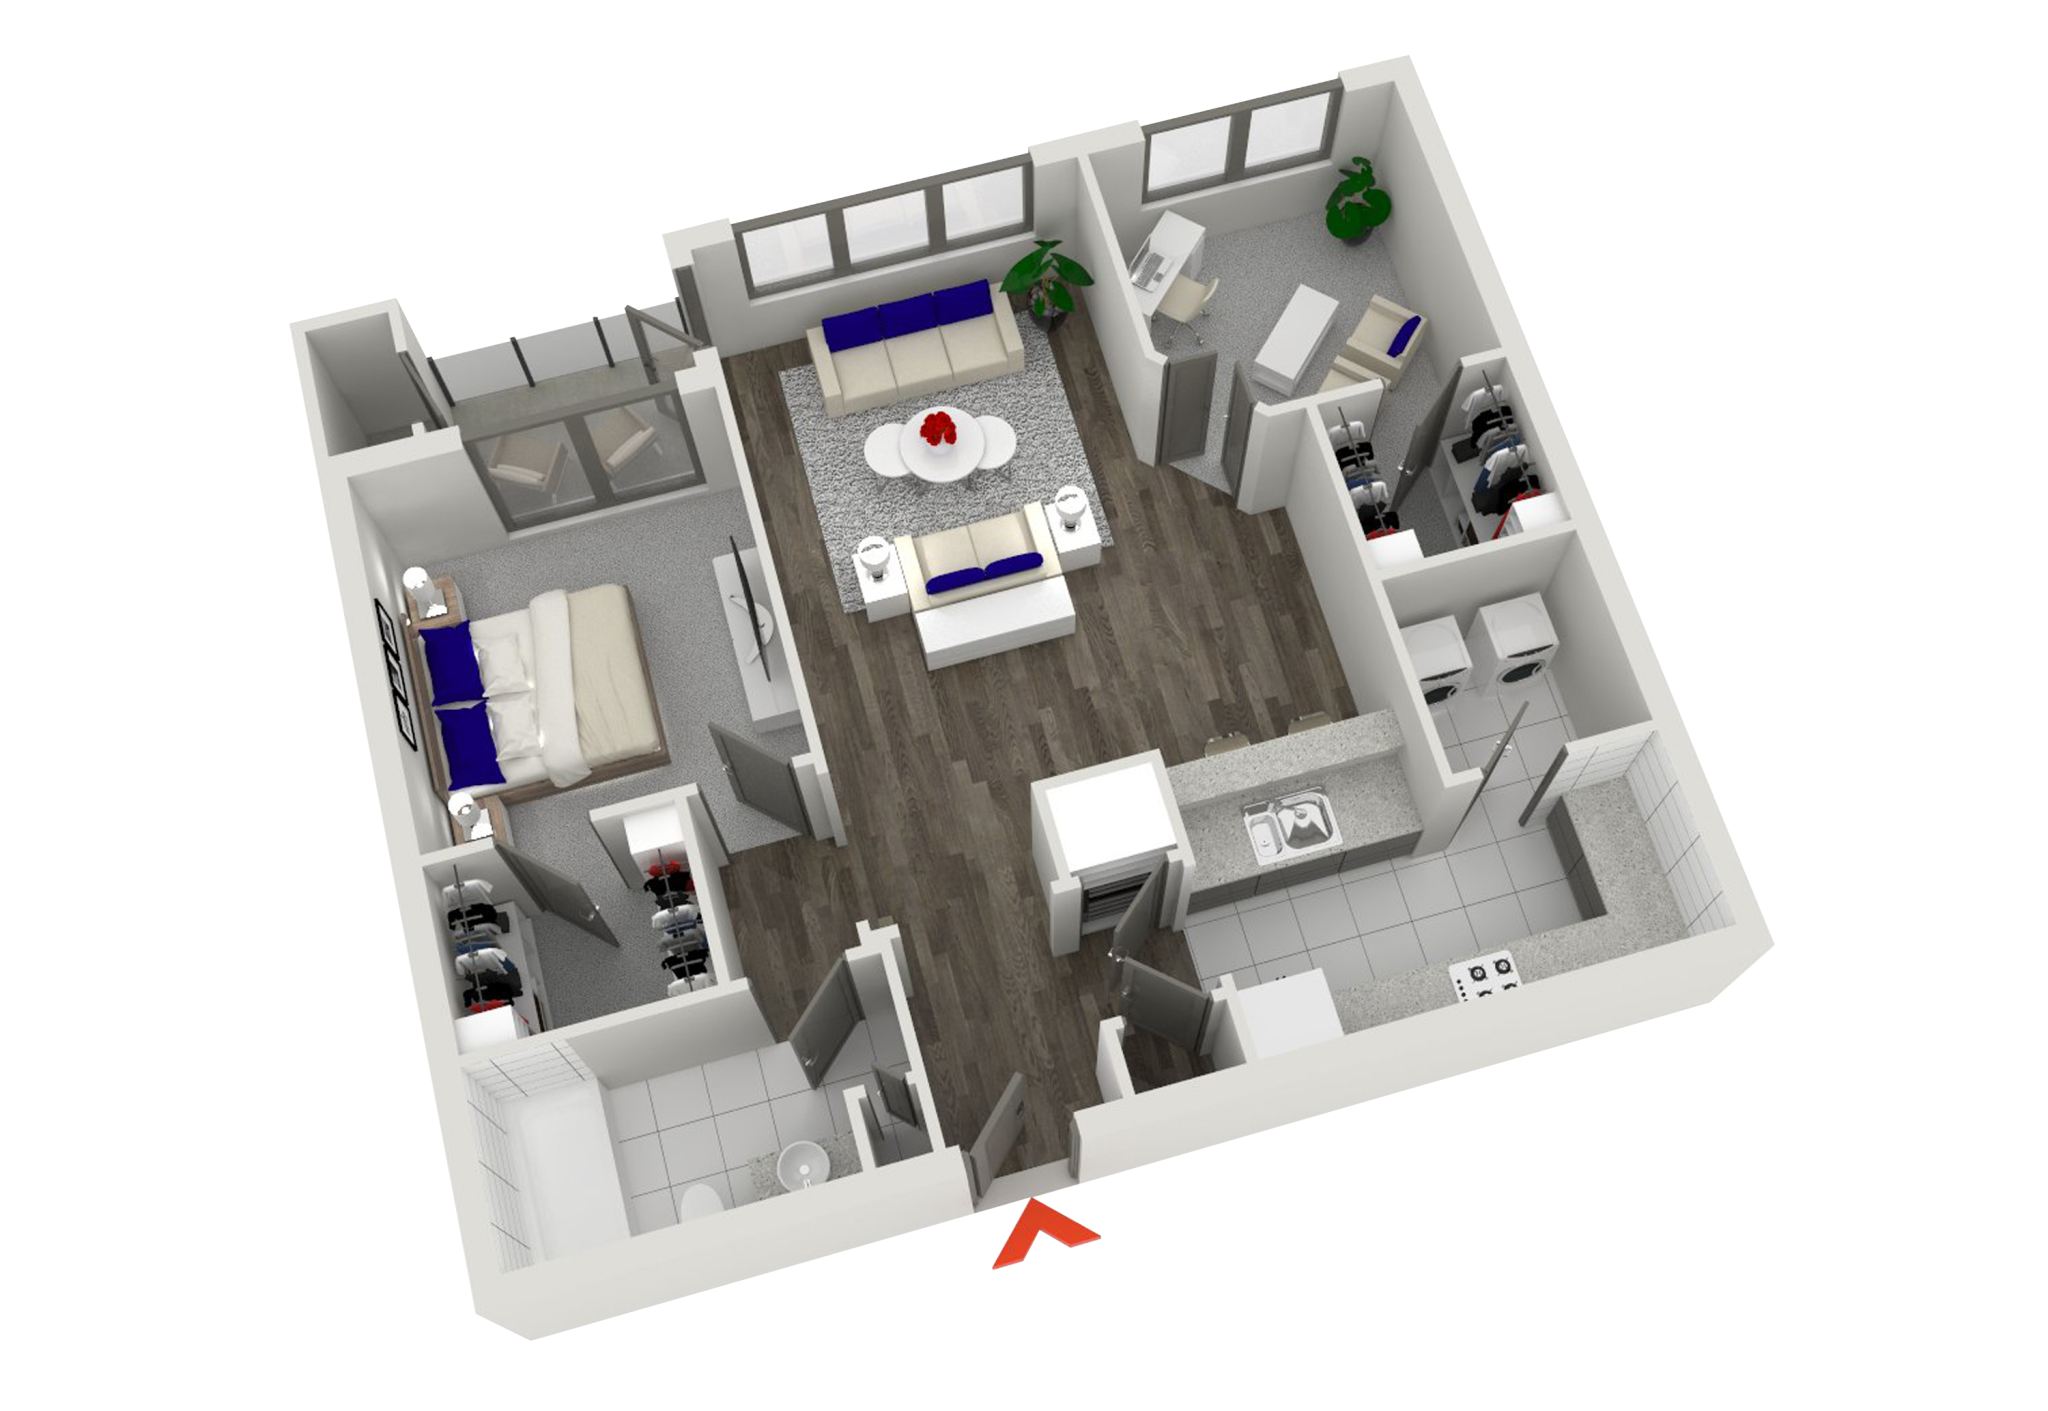 Awesome 1 bedroom apartment floor plans gallery for Walk up apartment floor plans